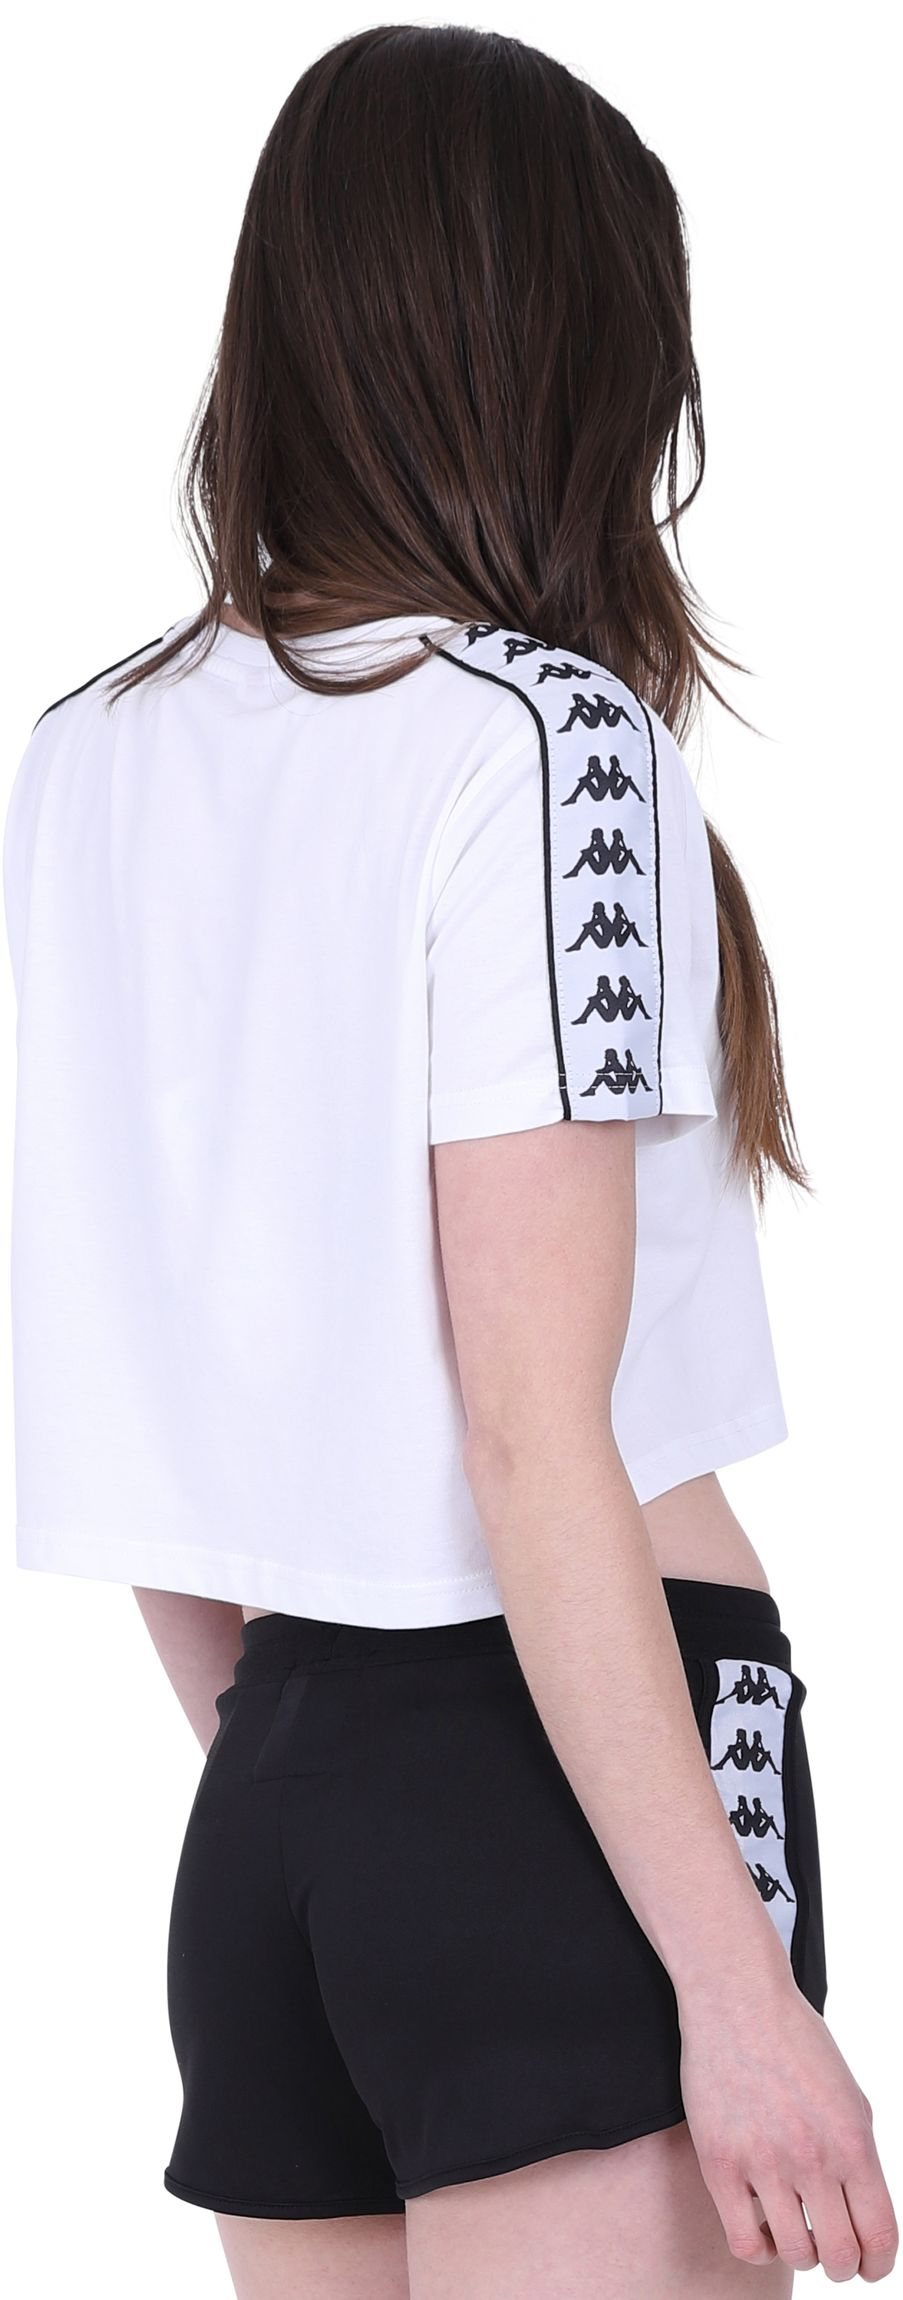 Kappa Apua Cropped T-Shirt White